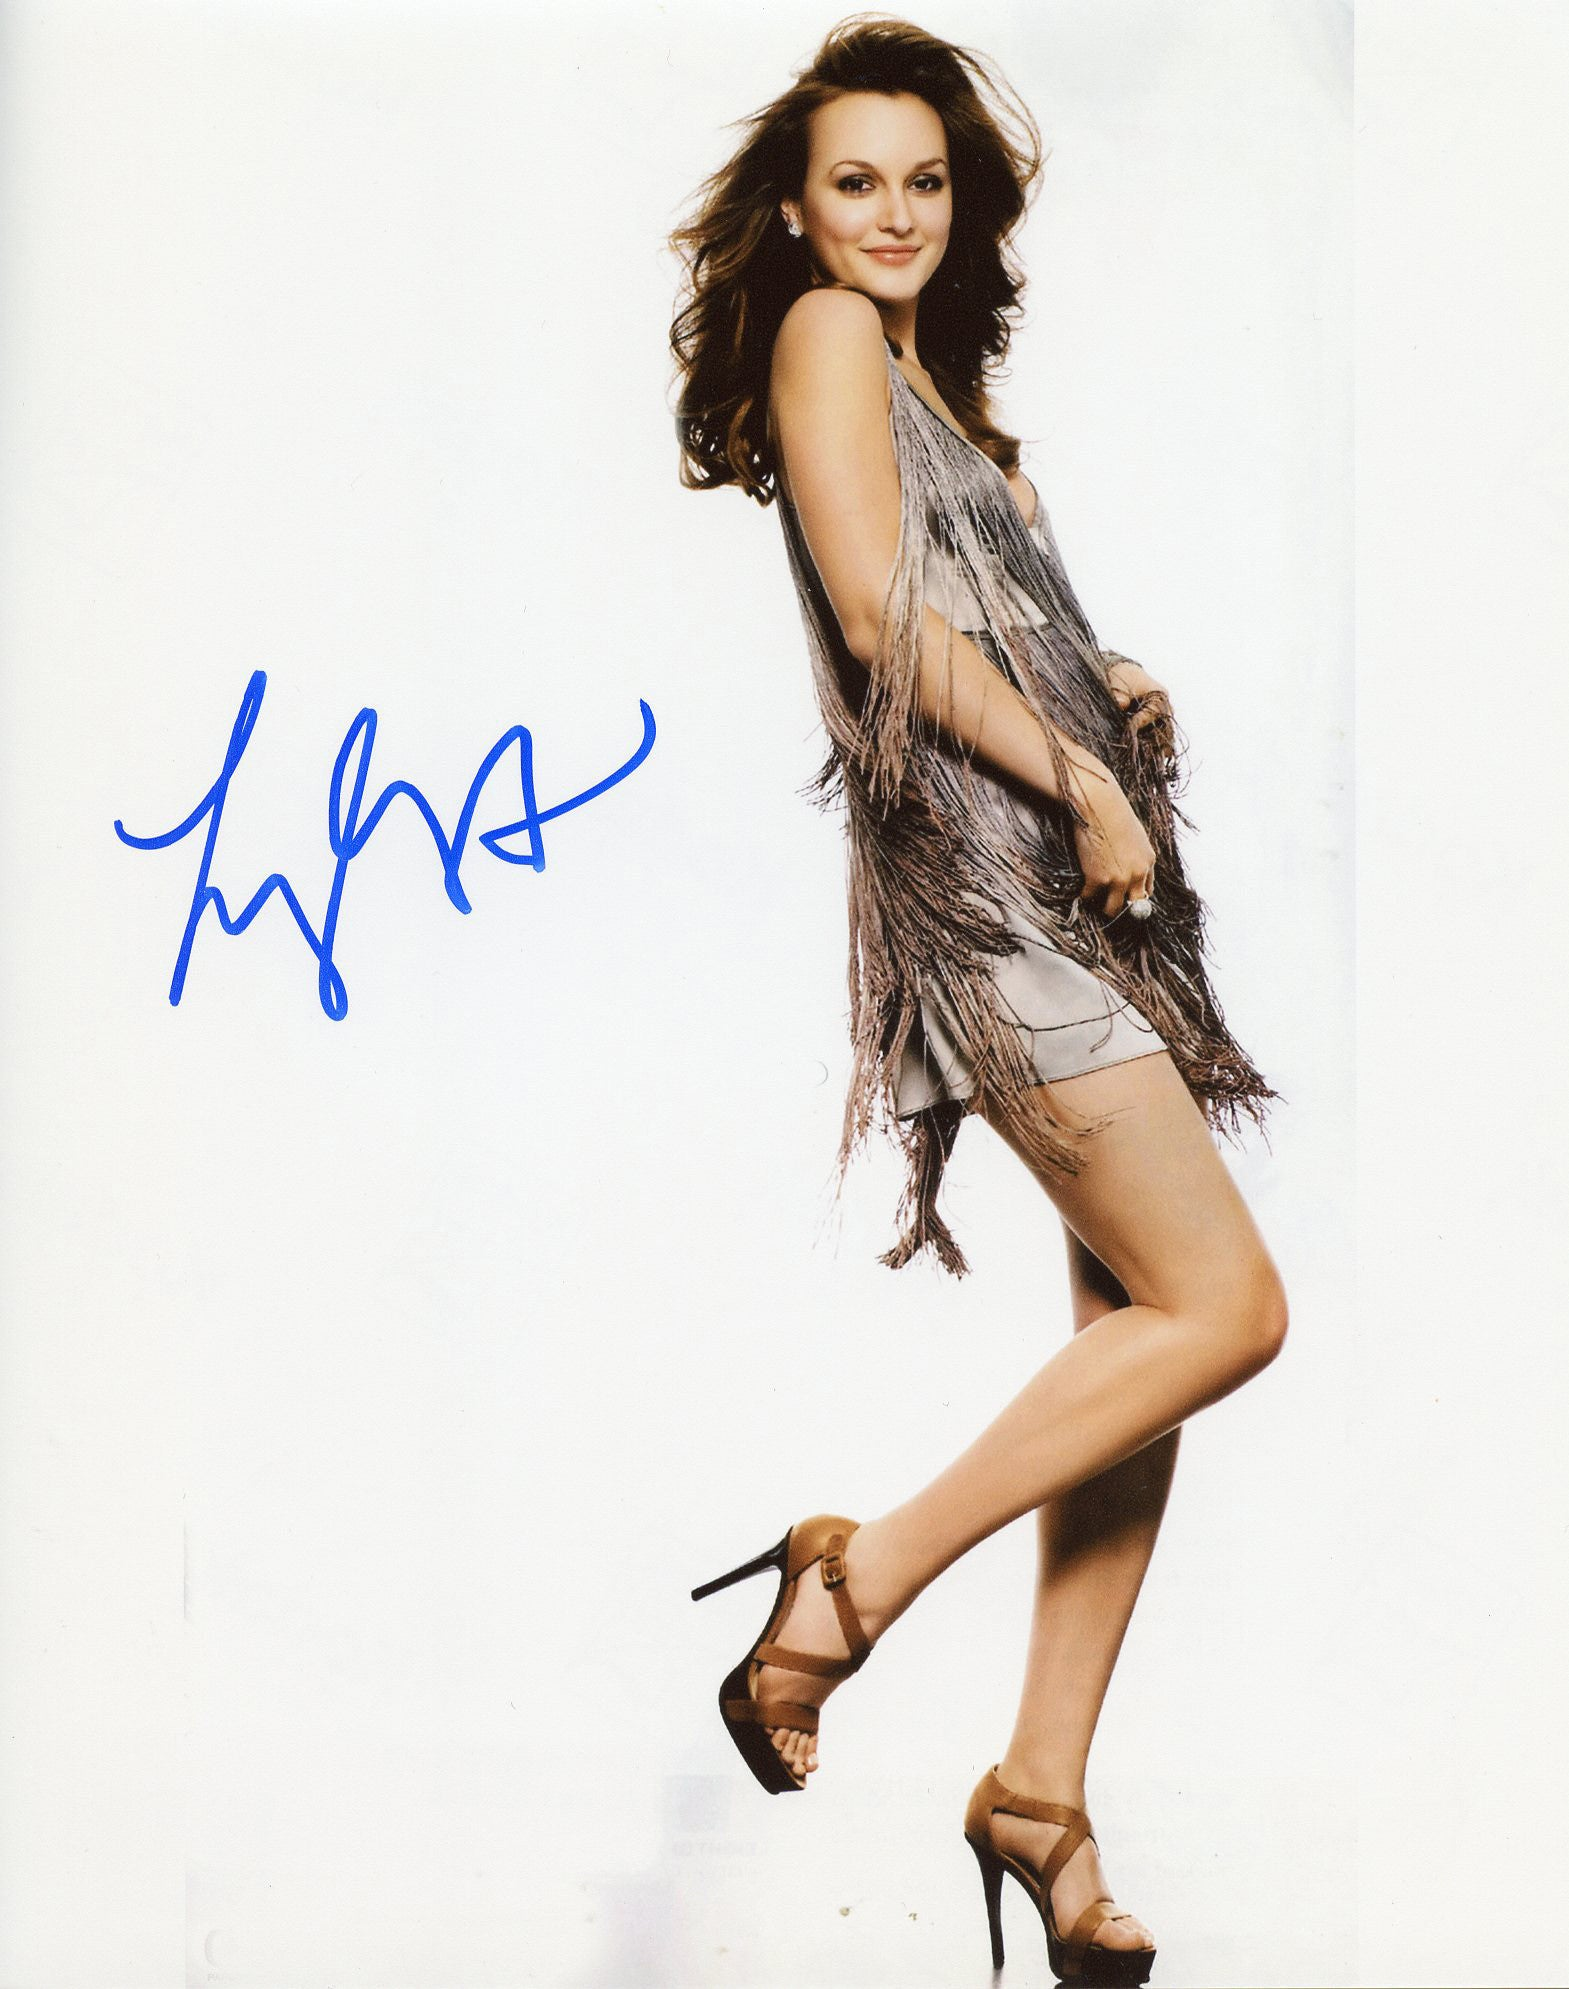 Leighton Meester Genuine Autograph Signed 8x10 Photo UACC Dealer